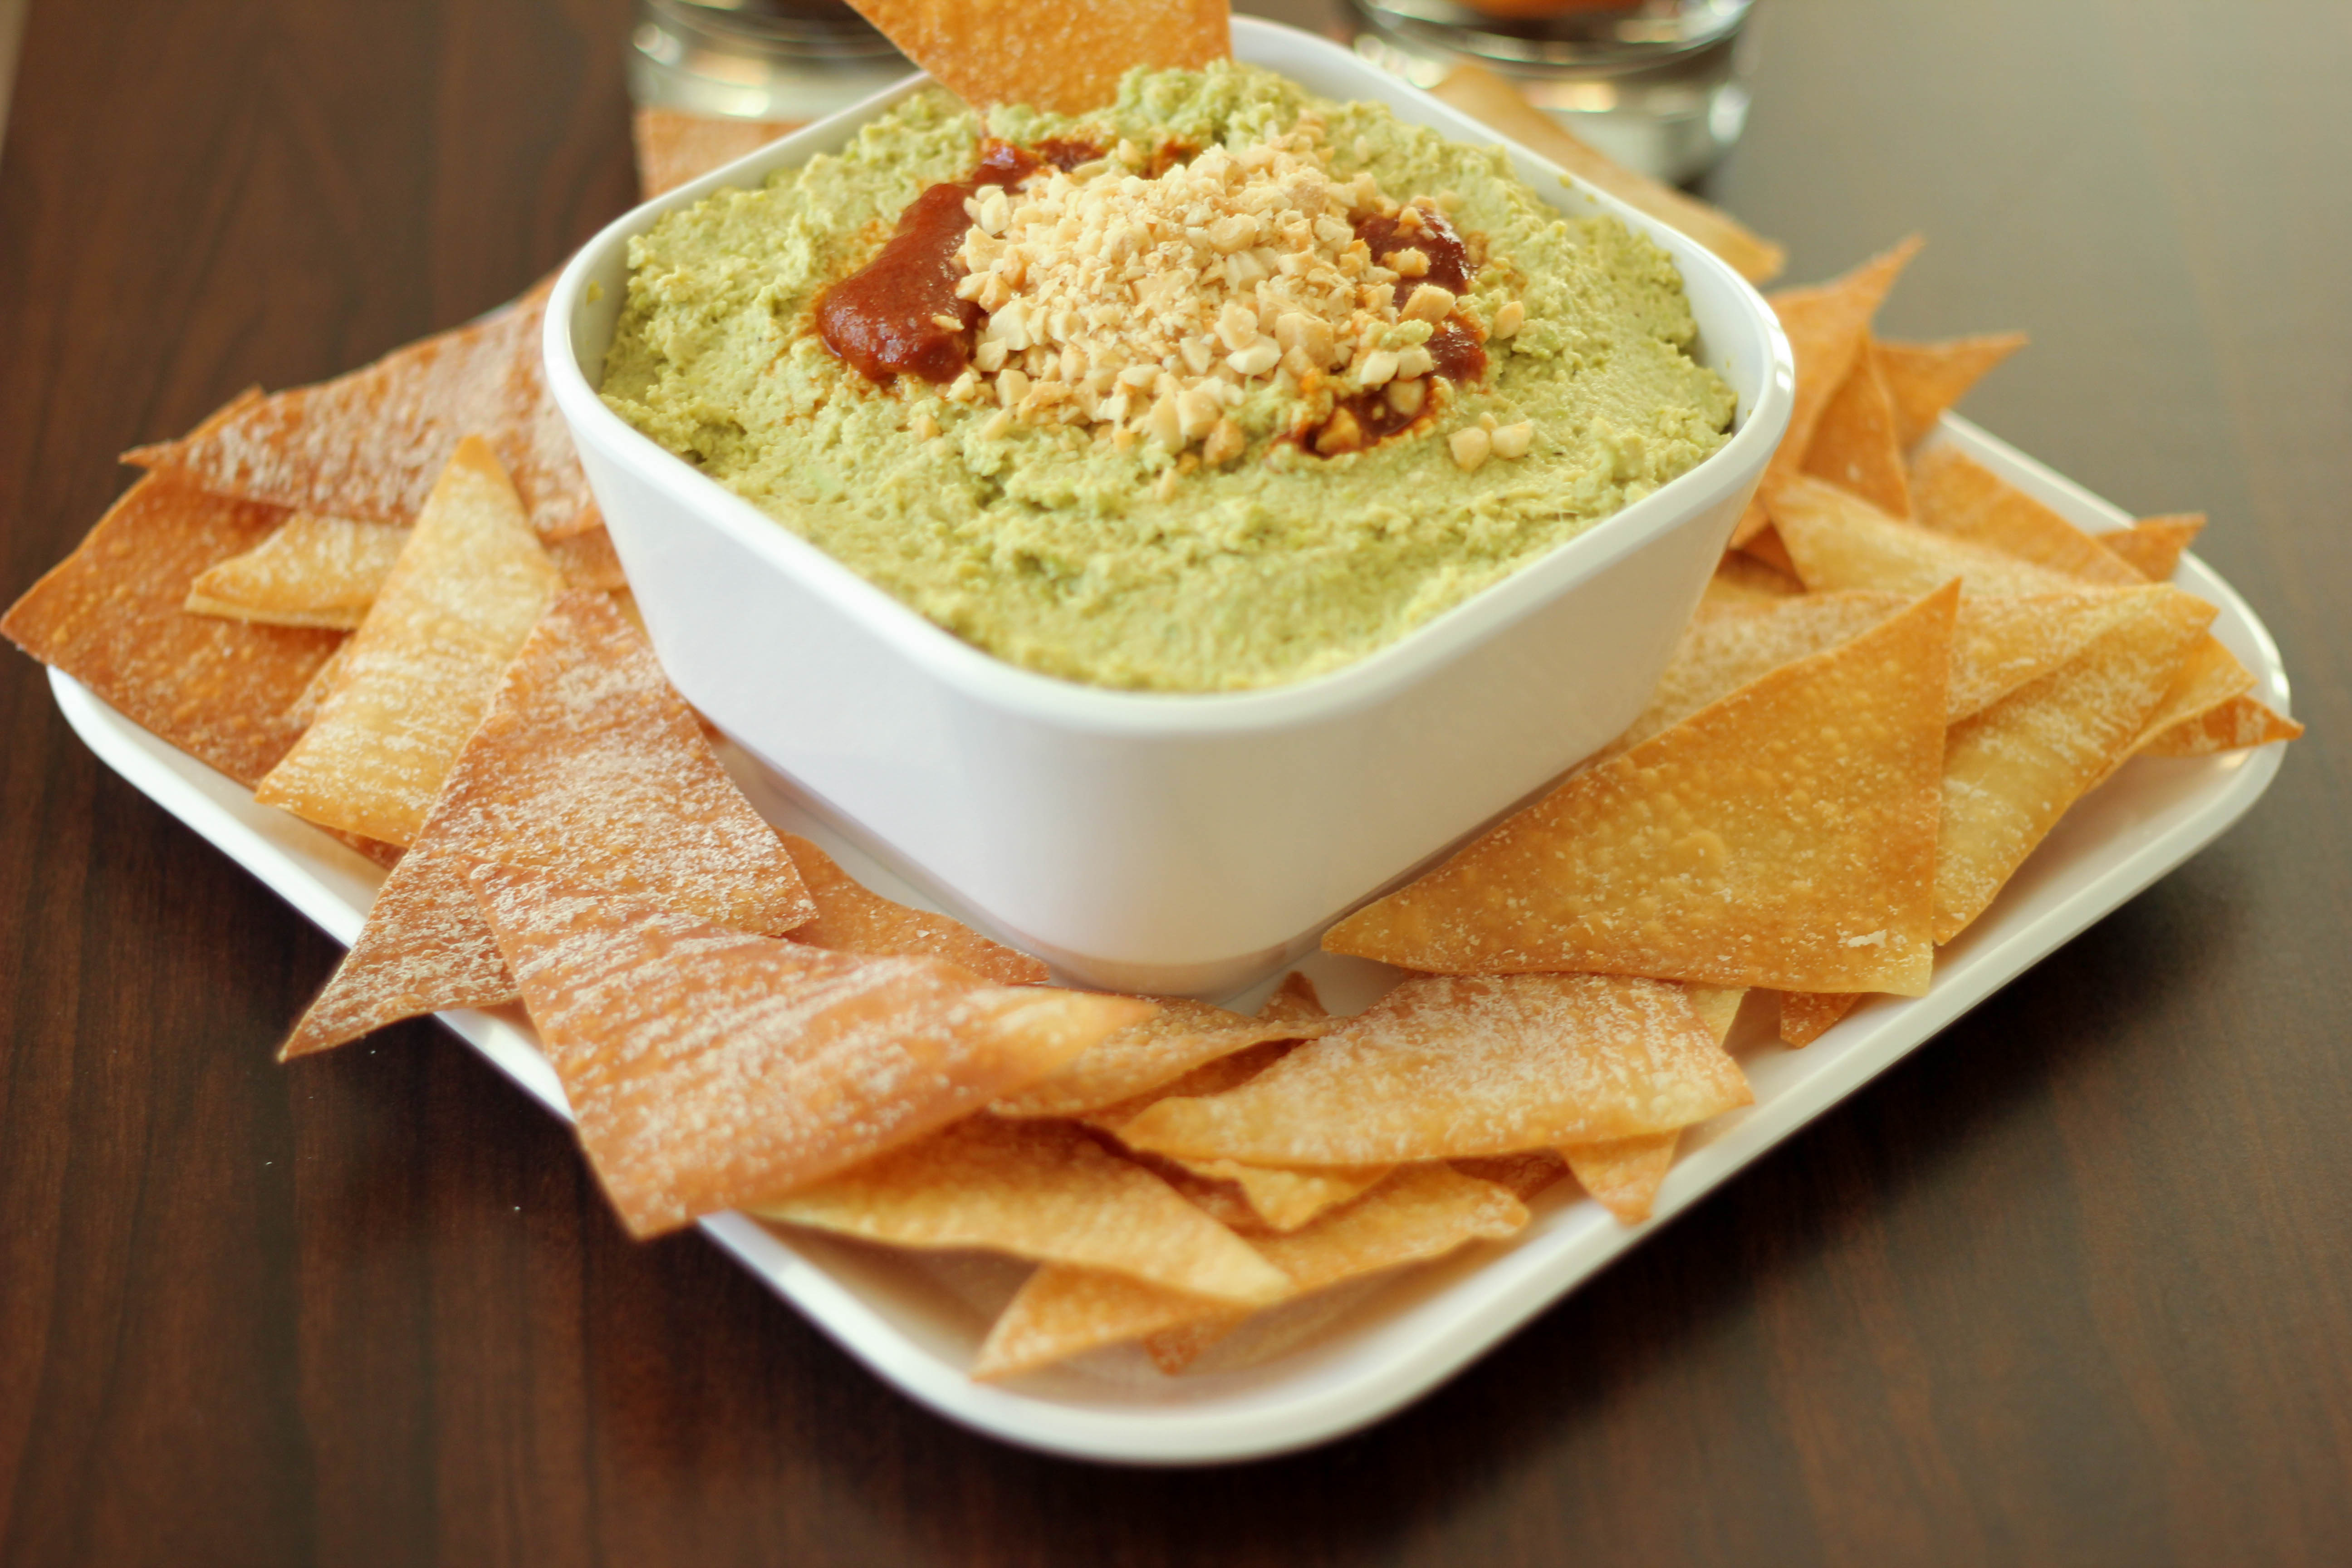 Wonton Chips with Asian Inspired Hummus | Stirlist